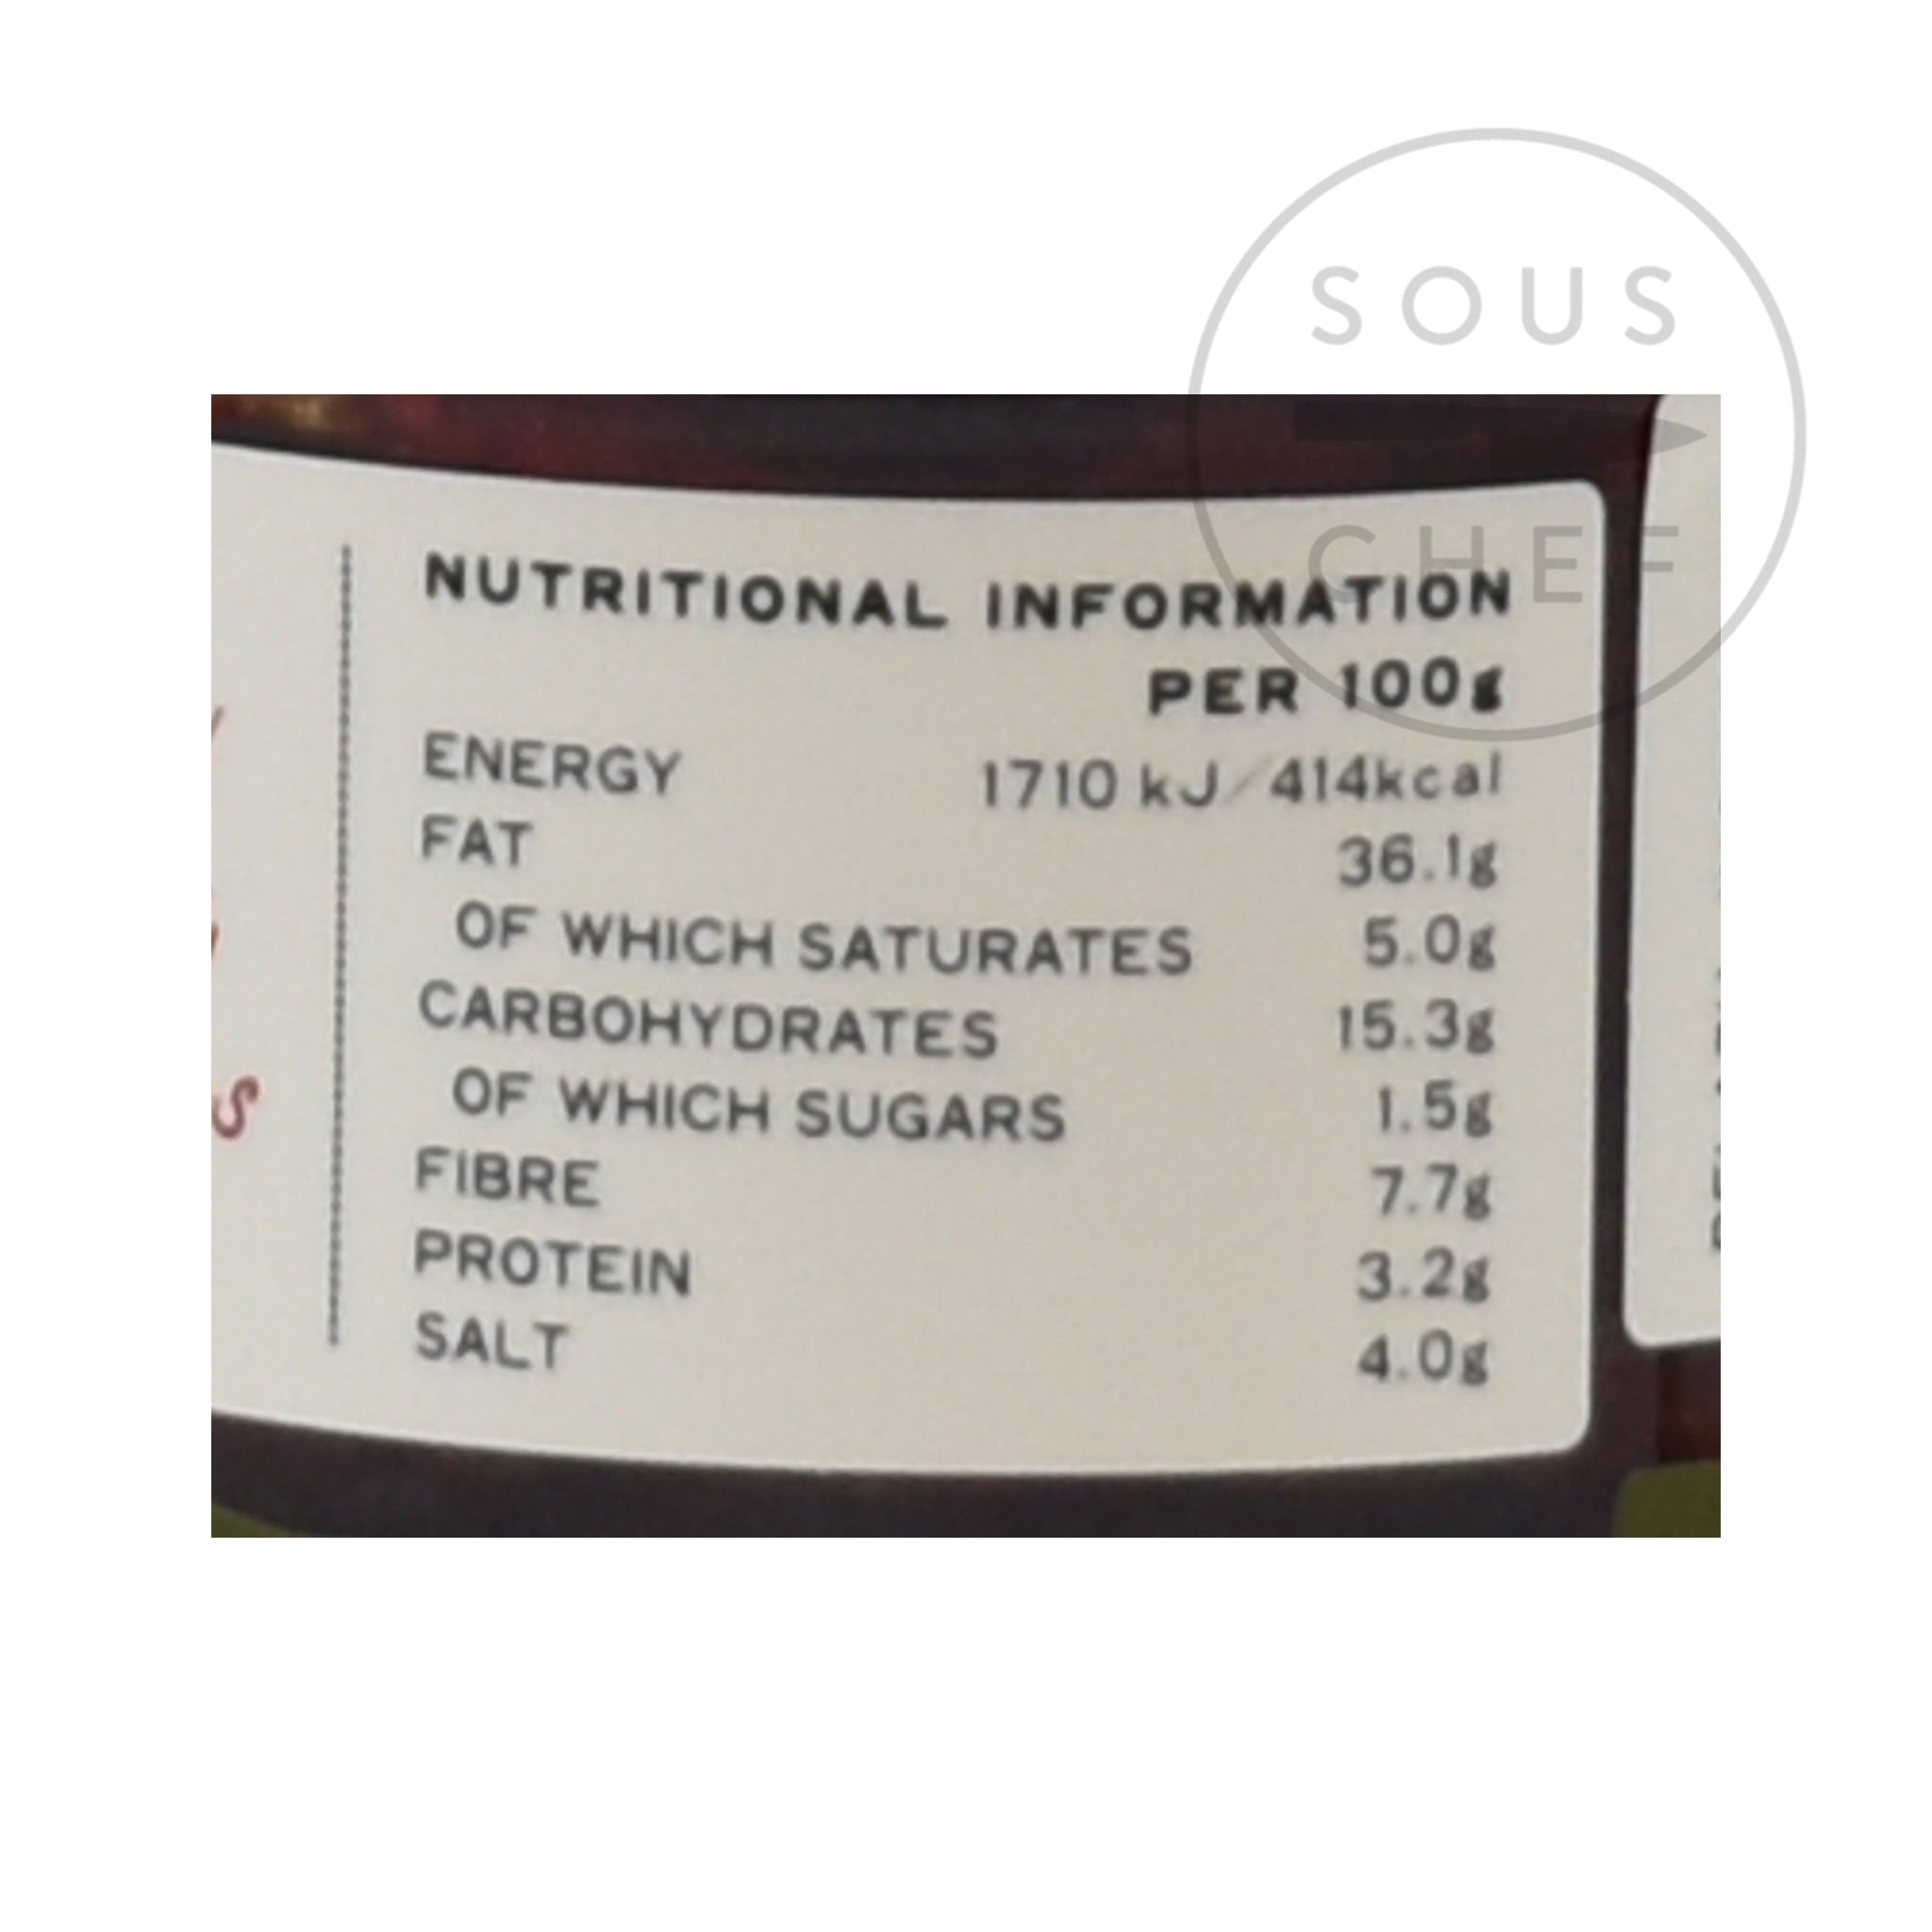 Belazu Rose Harissa 170g nutritional information